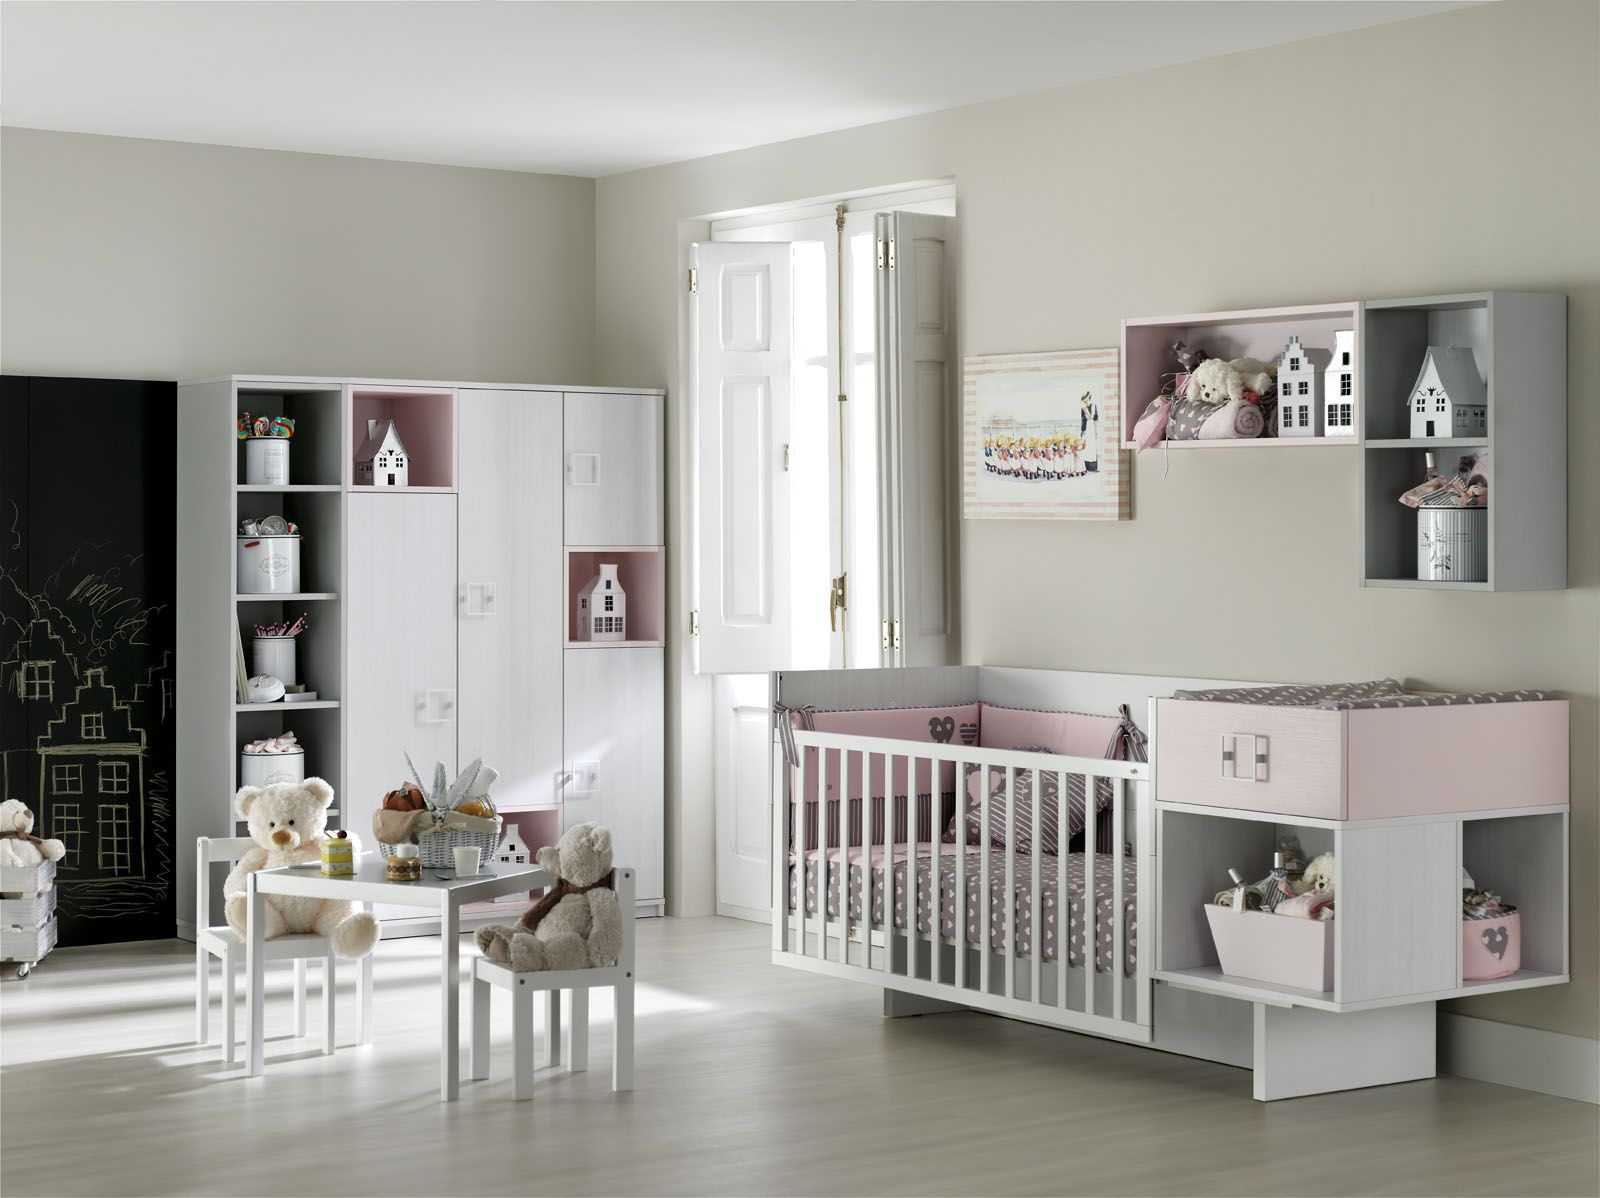 Catalogo Muebles Ros Cunas Y Convertibles Muebles Ros Kids Touch Mini